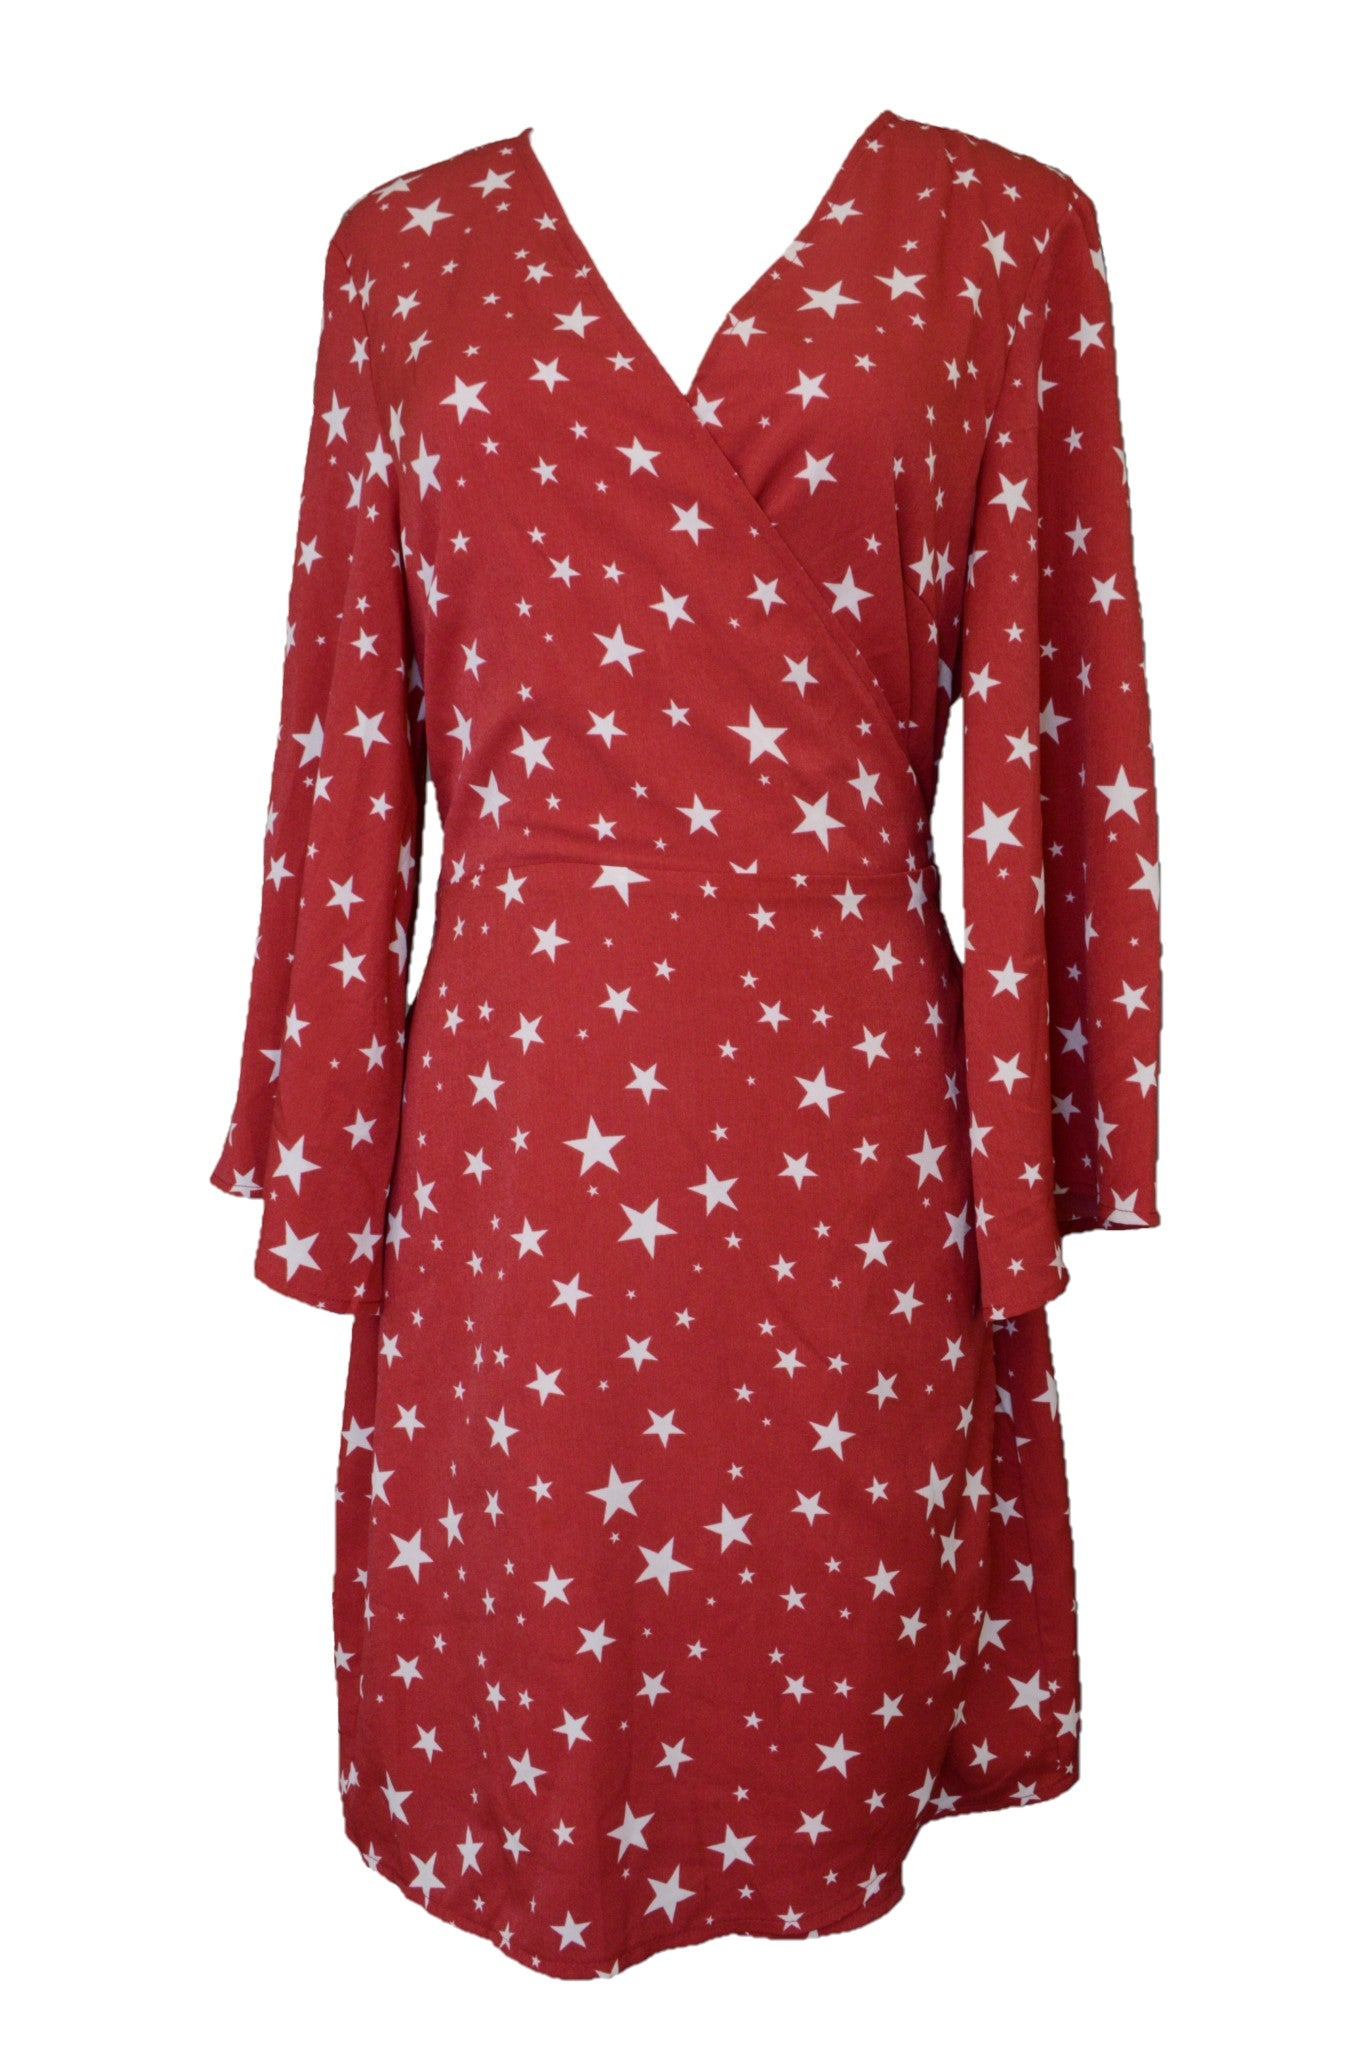 Atmos & Here wrap dress, red and white stars